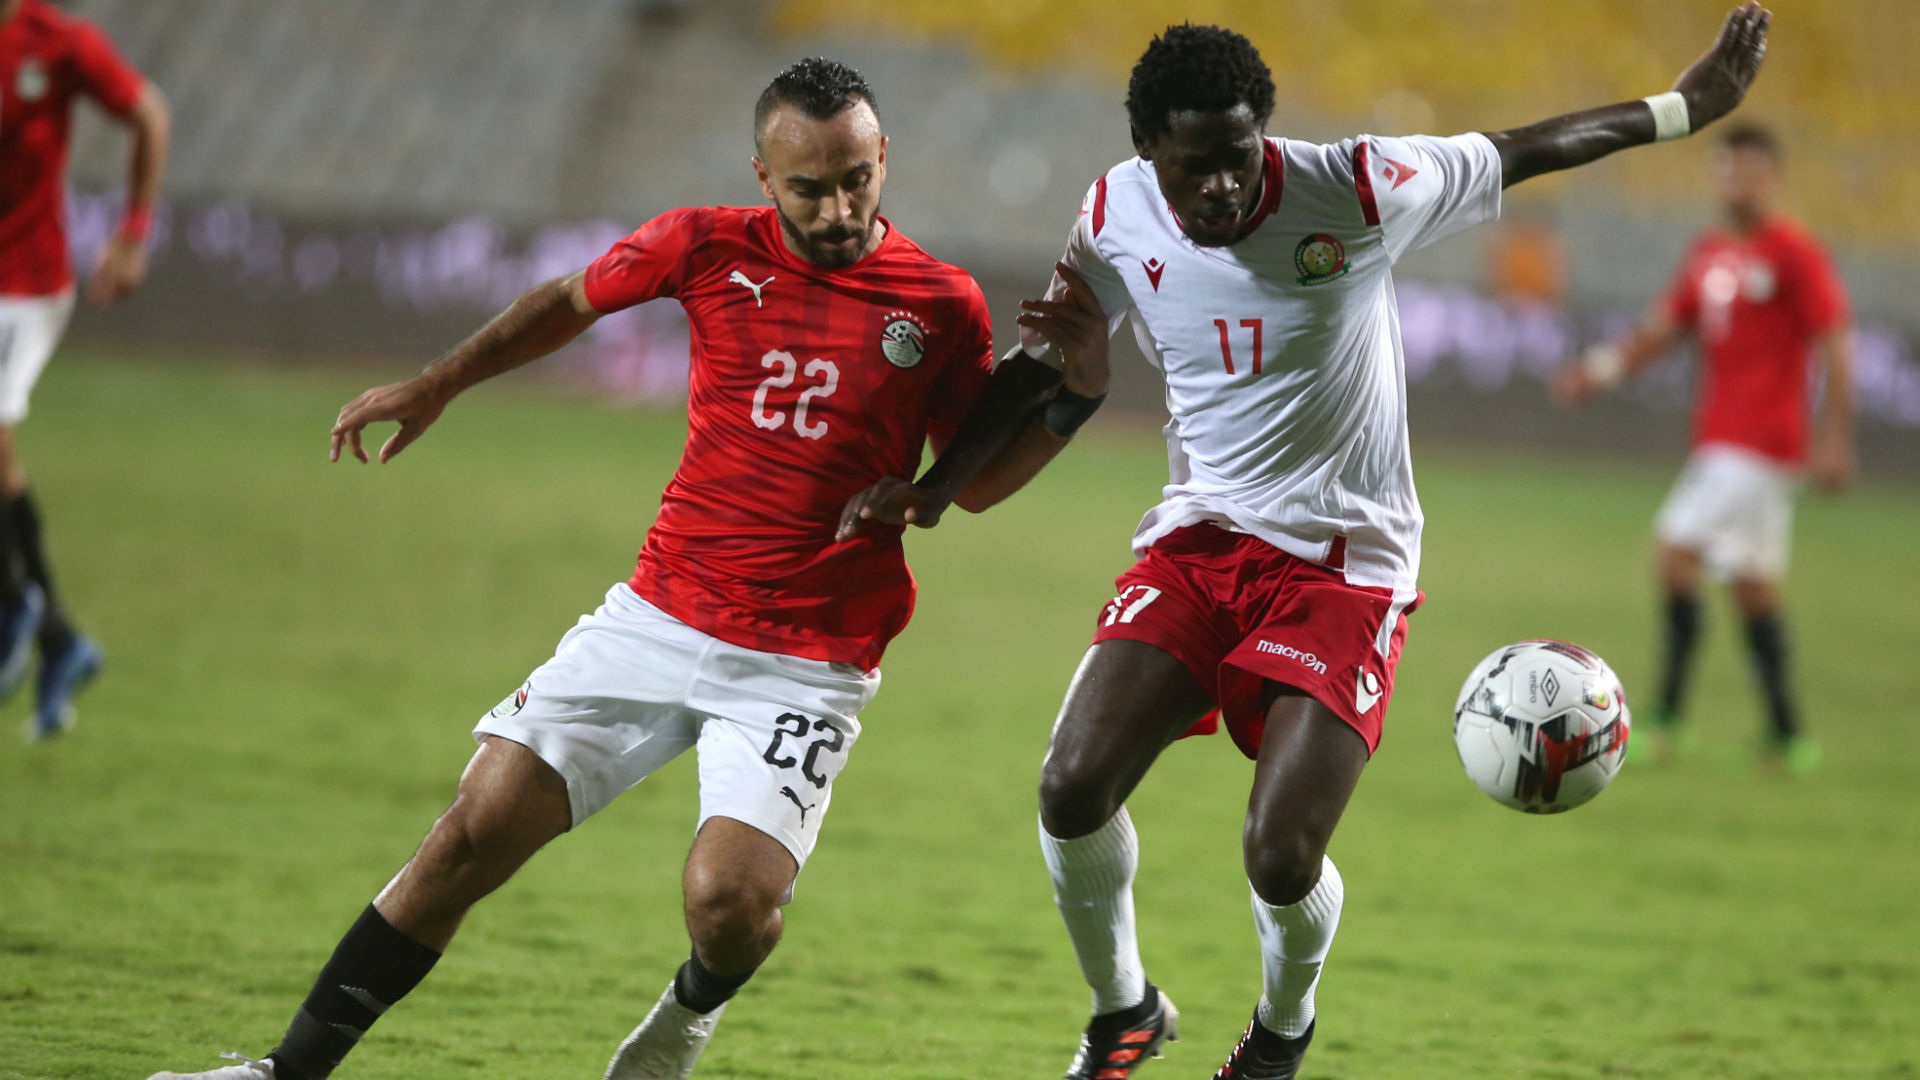 Afcon 2021 Qualifiers: Players who shone for Kenya against Egypt